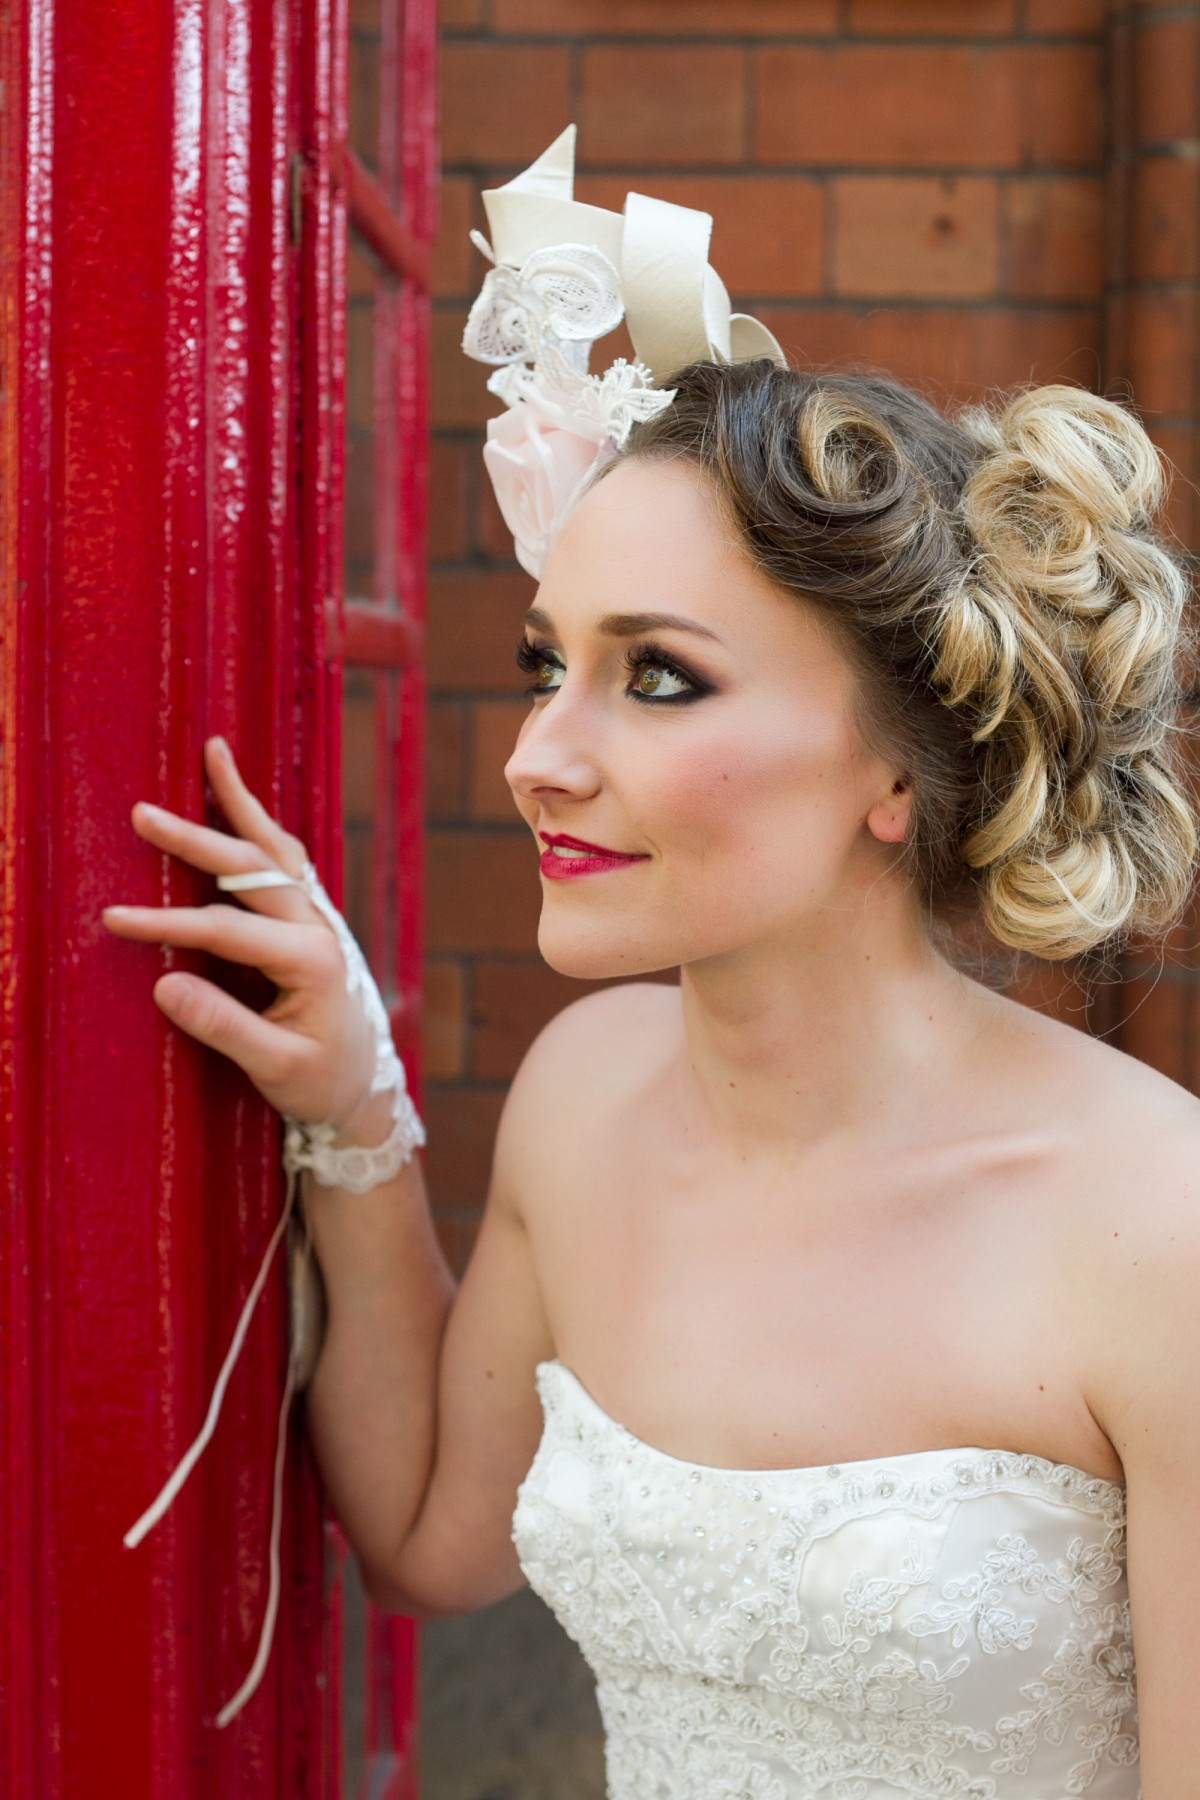 Iso Elegant Photography - Leicester wedding network - Railway wedding - vintage wedding 23